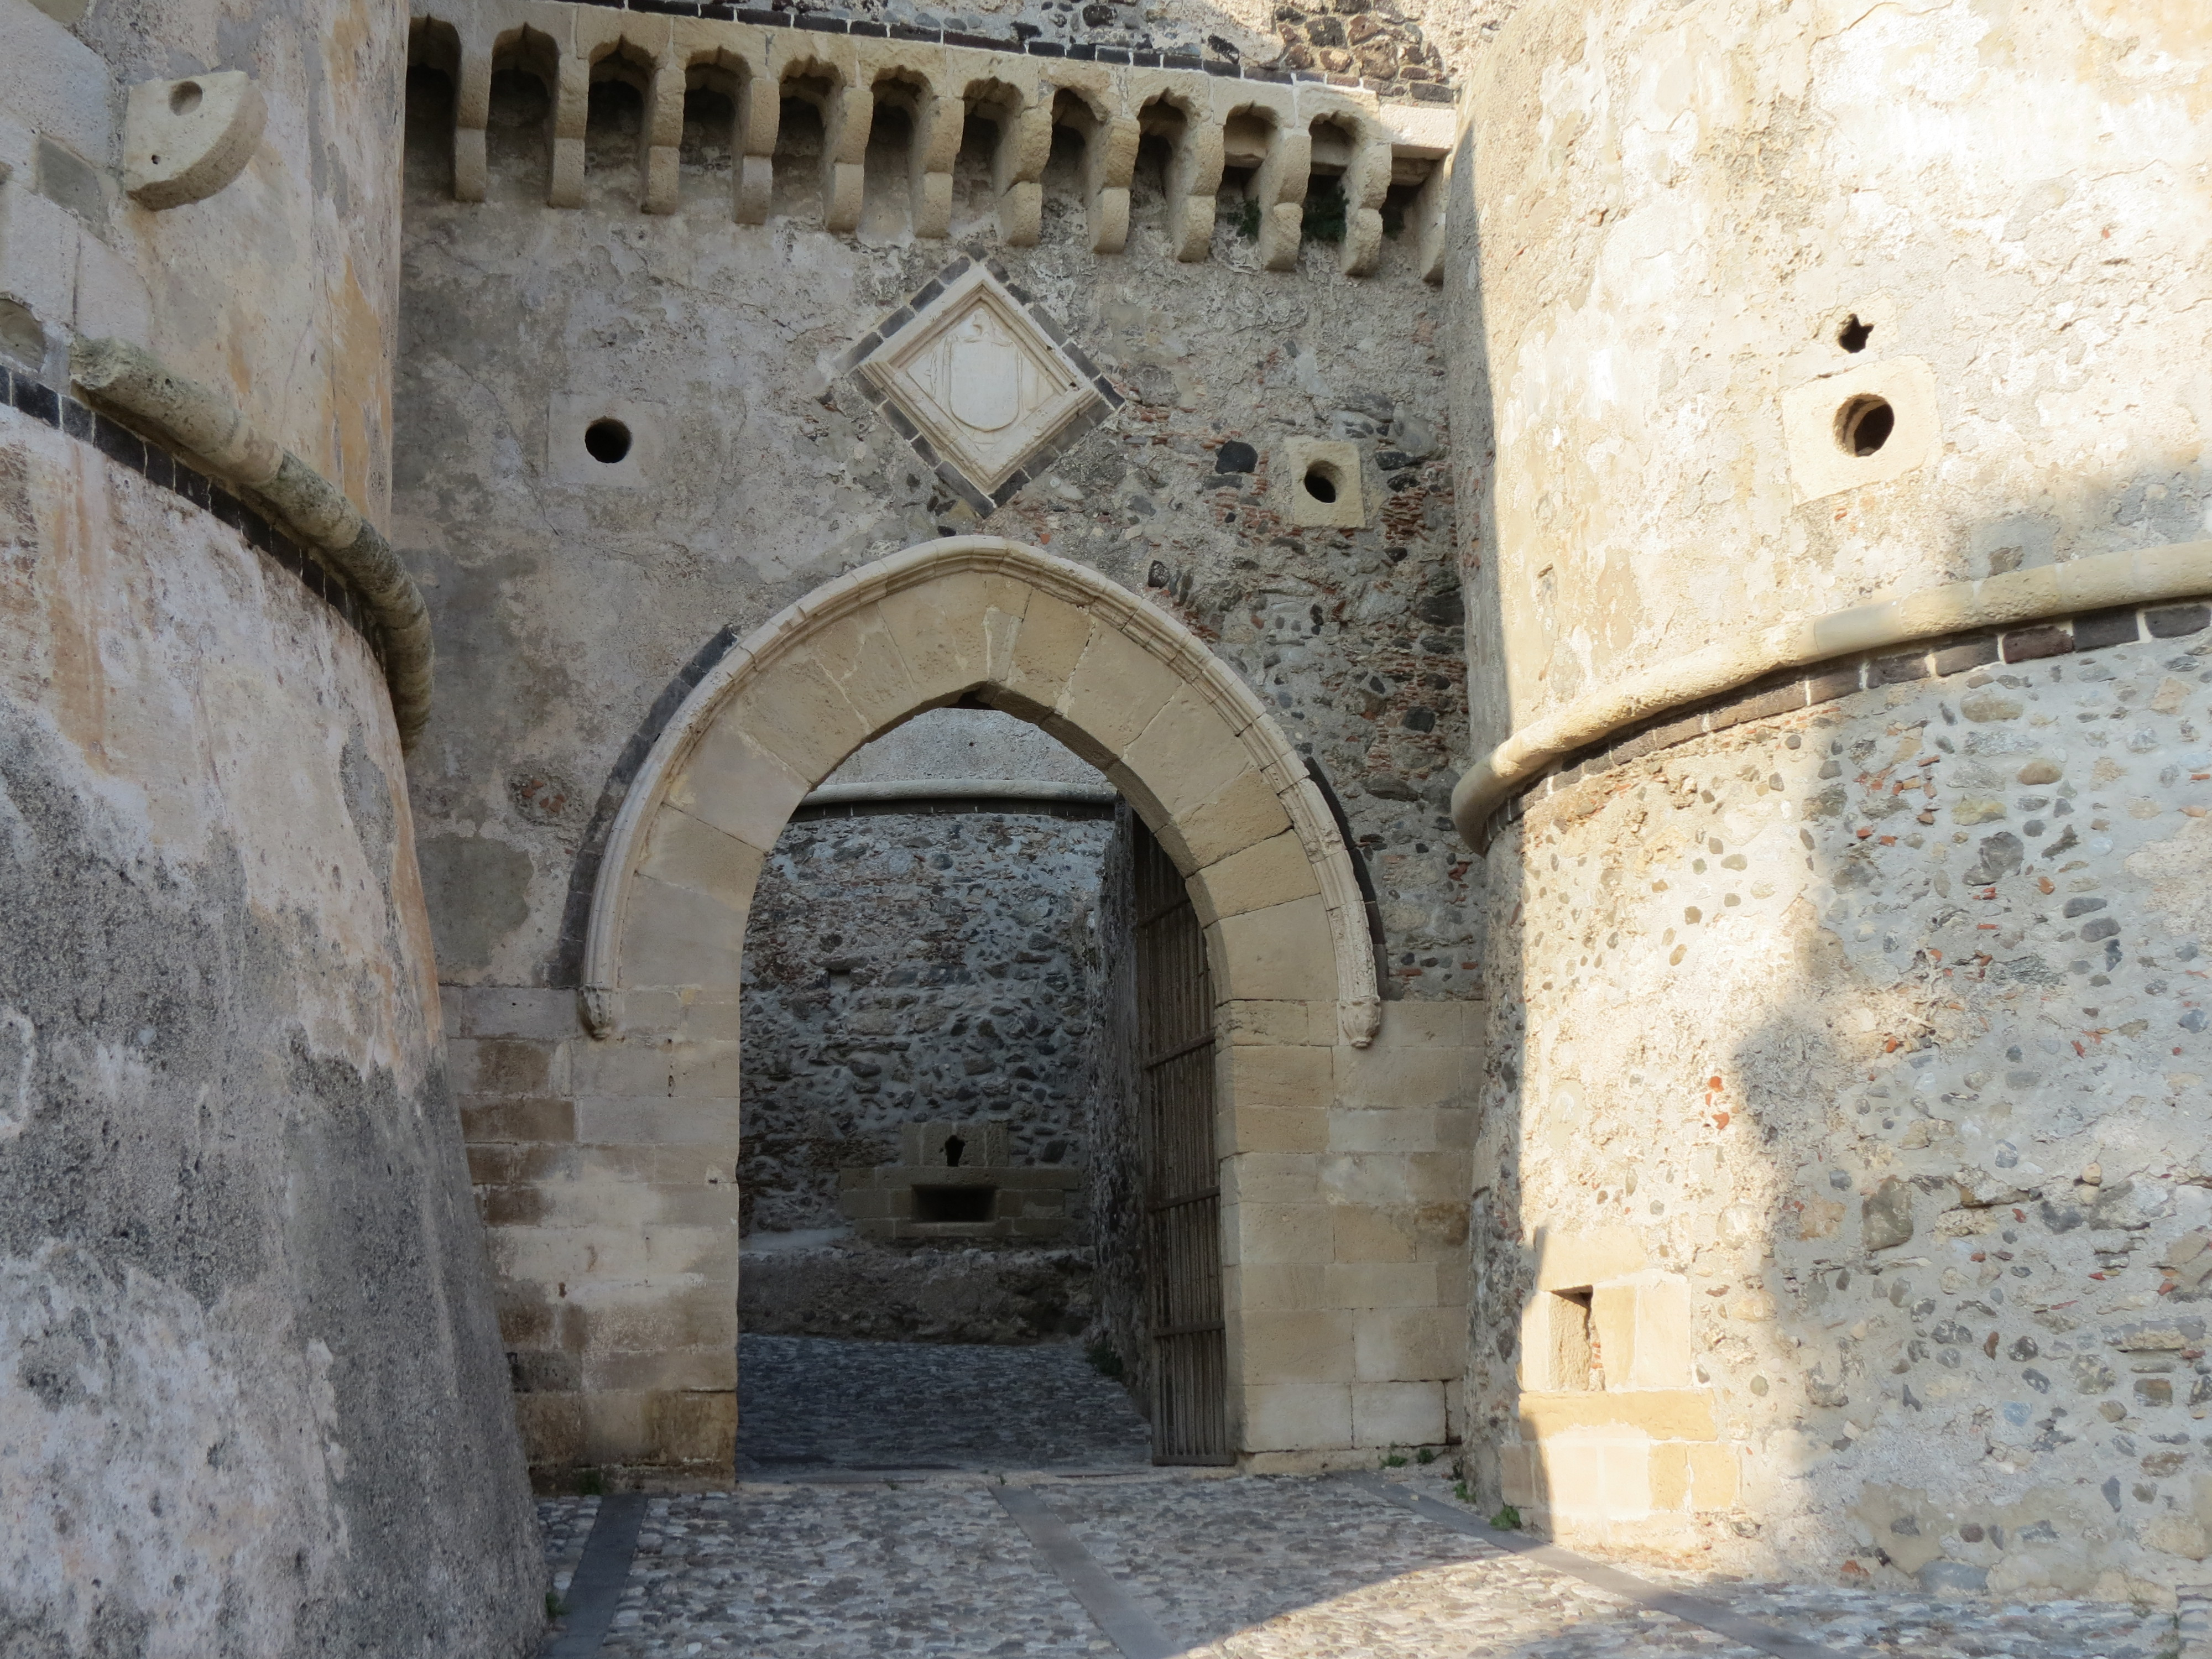 The main gateway with the Aragonese coat of arms above it.